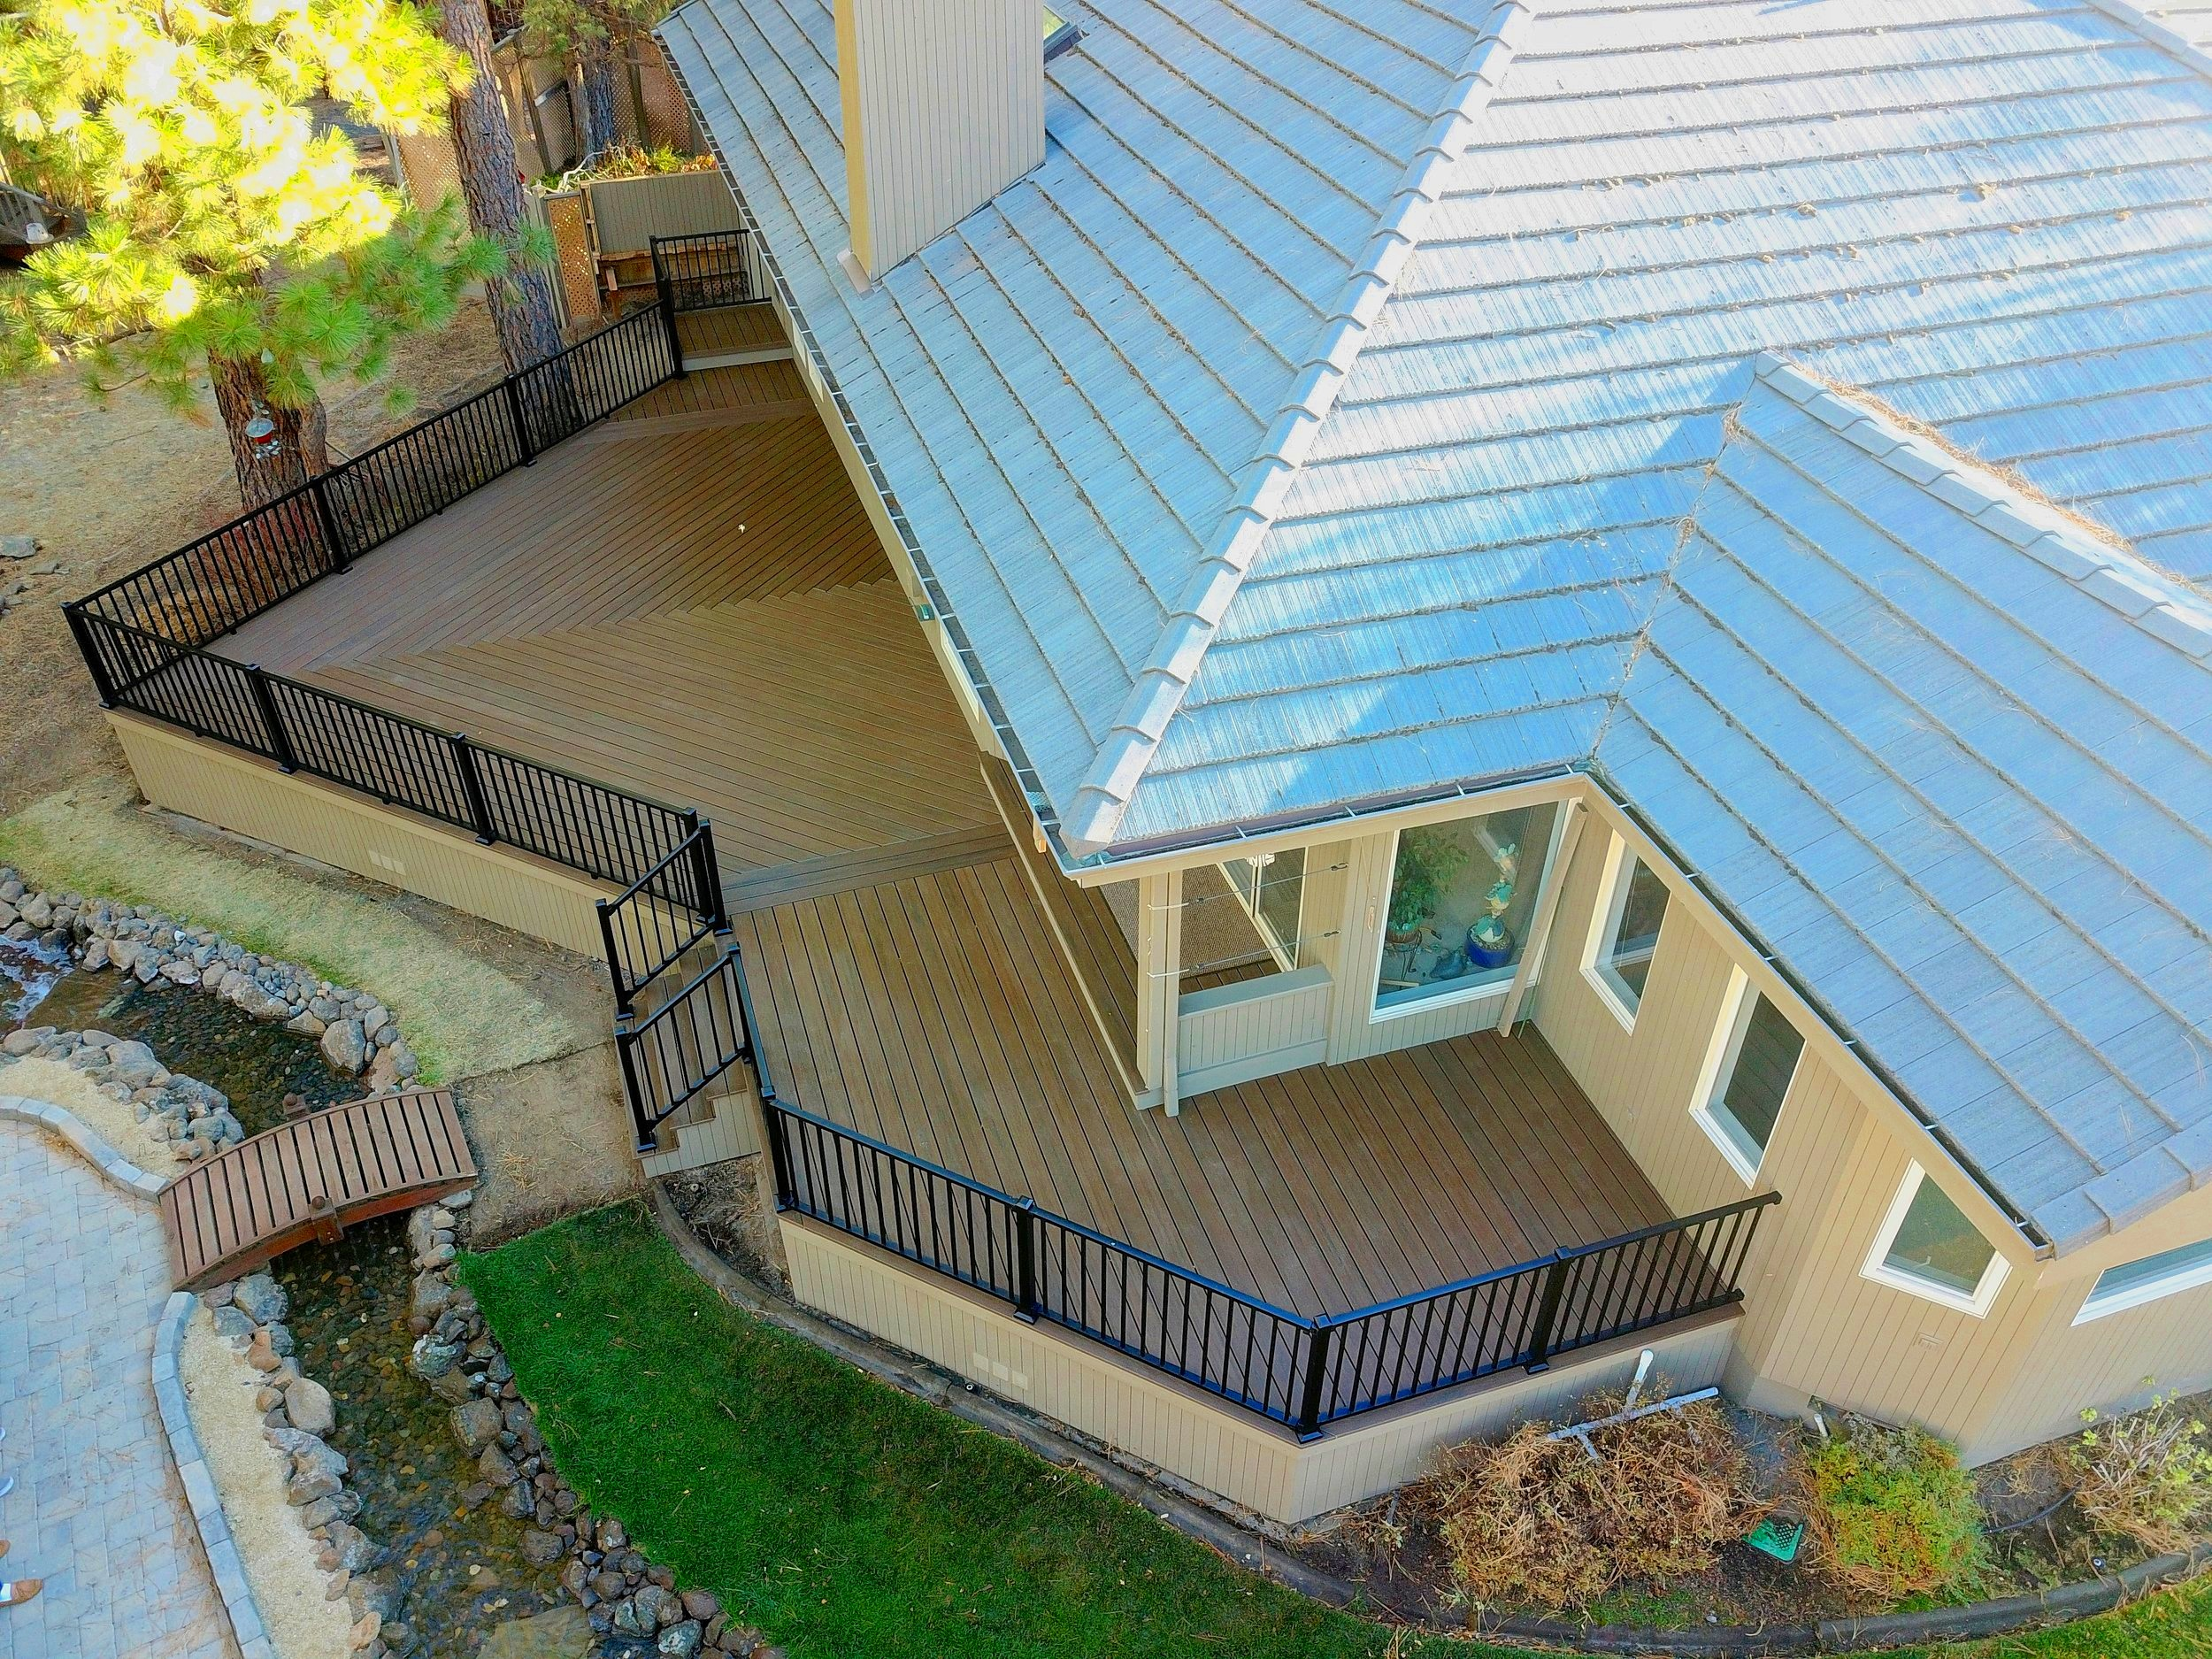 Skirting - Deck skirting is an optional wall that is built along the deck's outer edge and used to enclose the area underneath the deck. Some deck owners choose to leave this area entirely open while others choose to leave it open but ask to have any exposed posts and beams wrapped thereby accomplishing a more finished look.